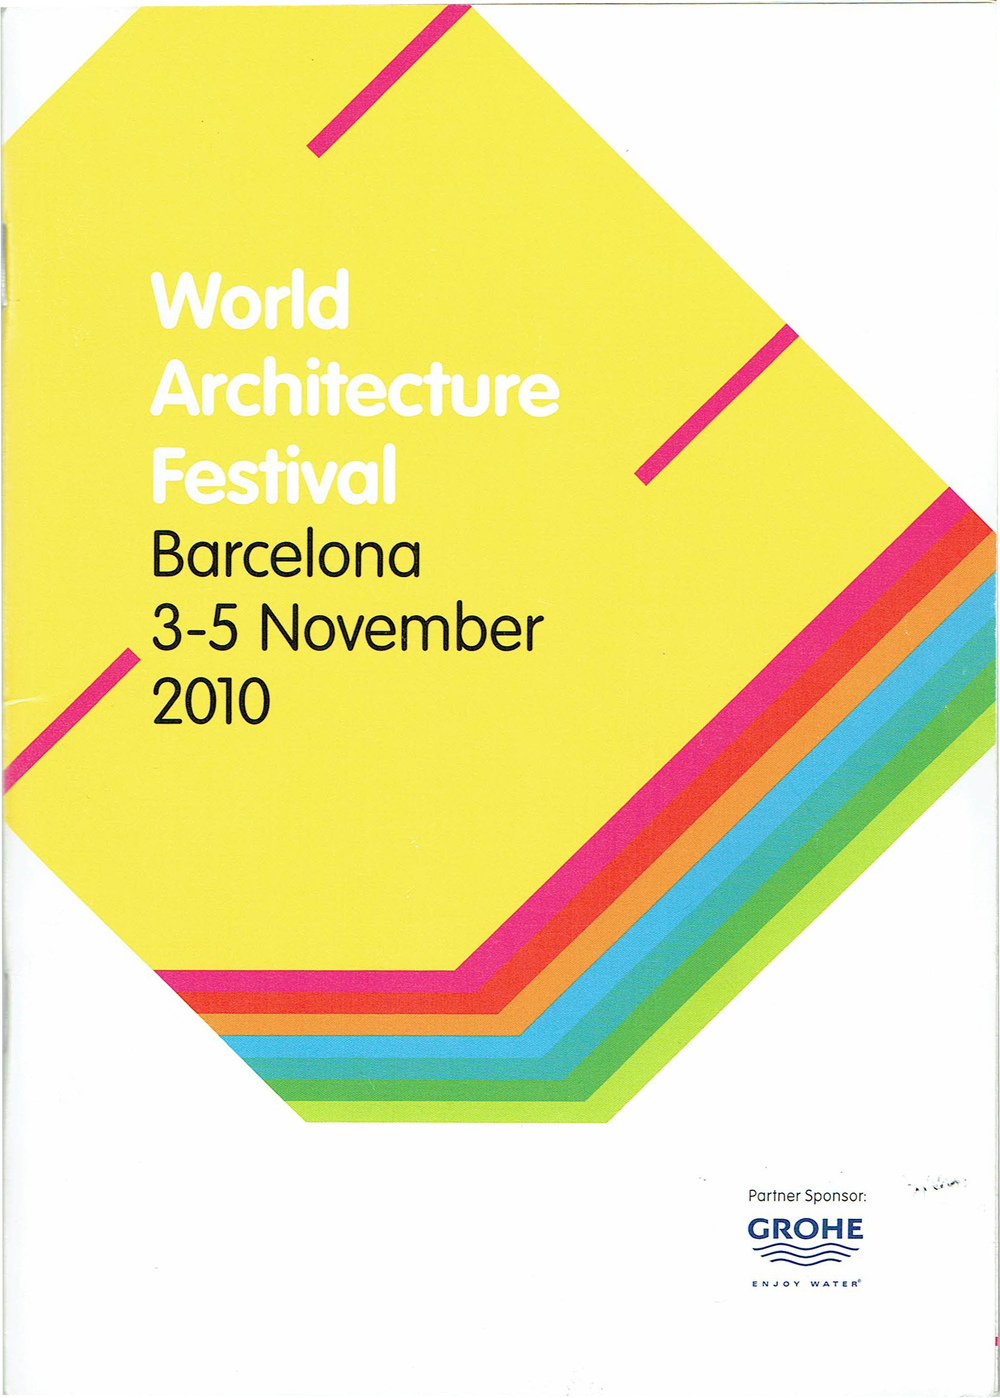 World Architecture Festival   Nov 2010  The Eleanor and Wilson Greatbatch Pavilion is a finalist at the World Architecture Festival. Sonya Lee attends the presentations with Toshiko Mori in Barcelona, Spain.